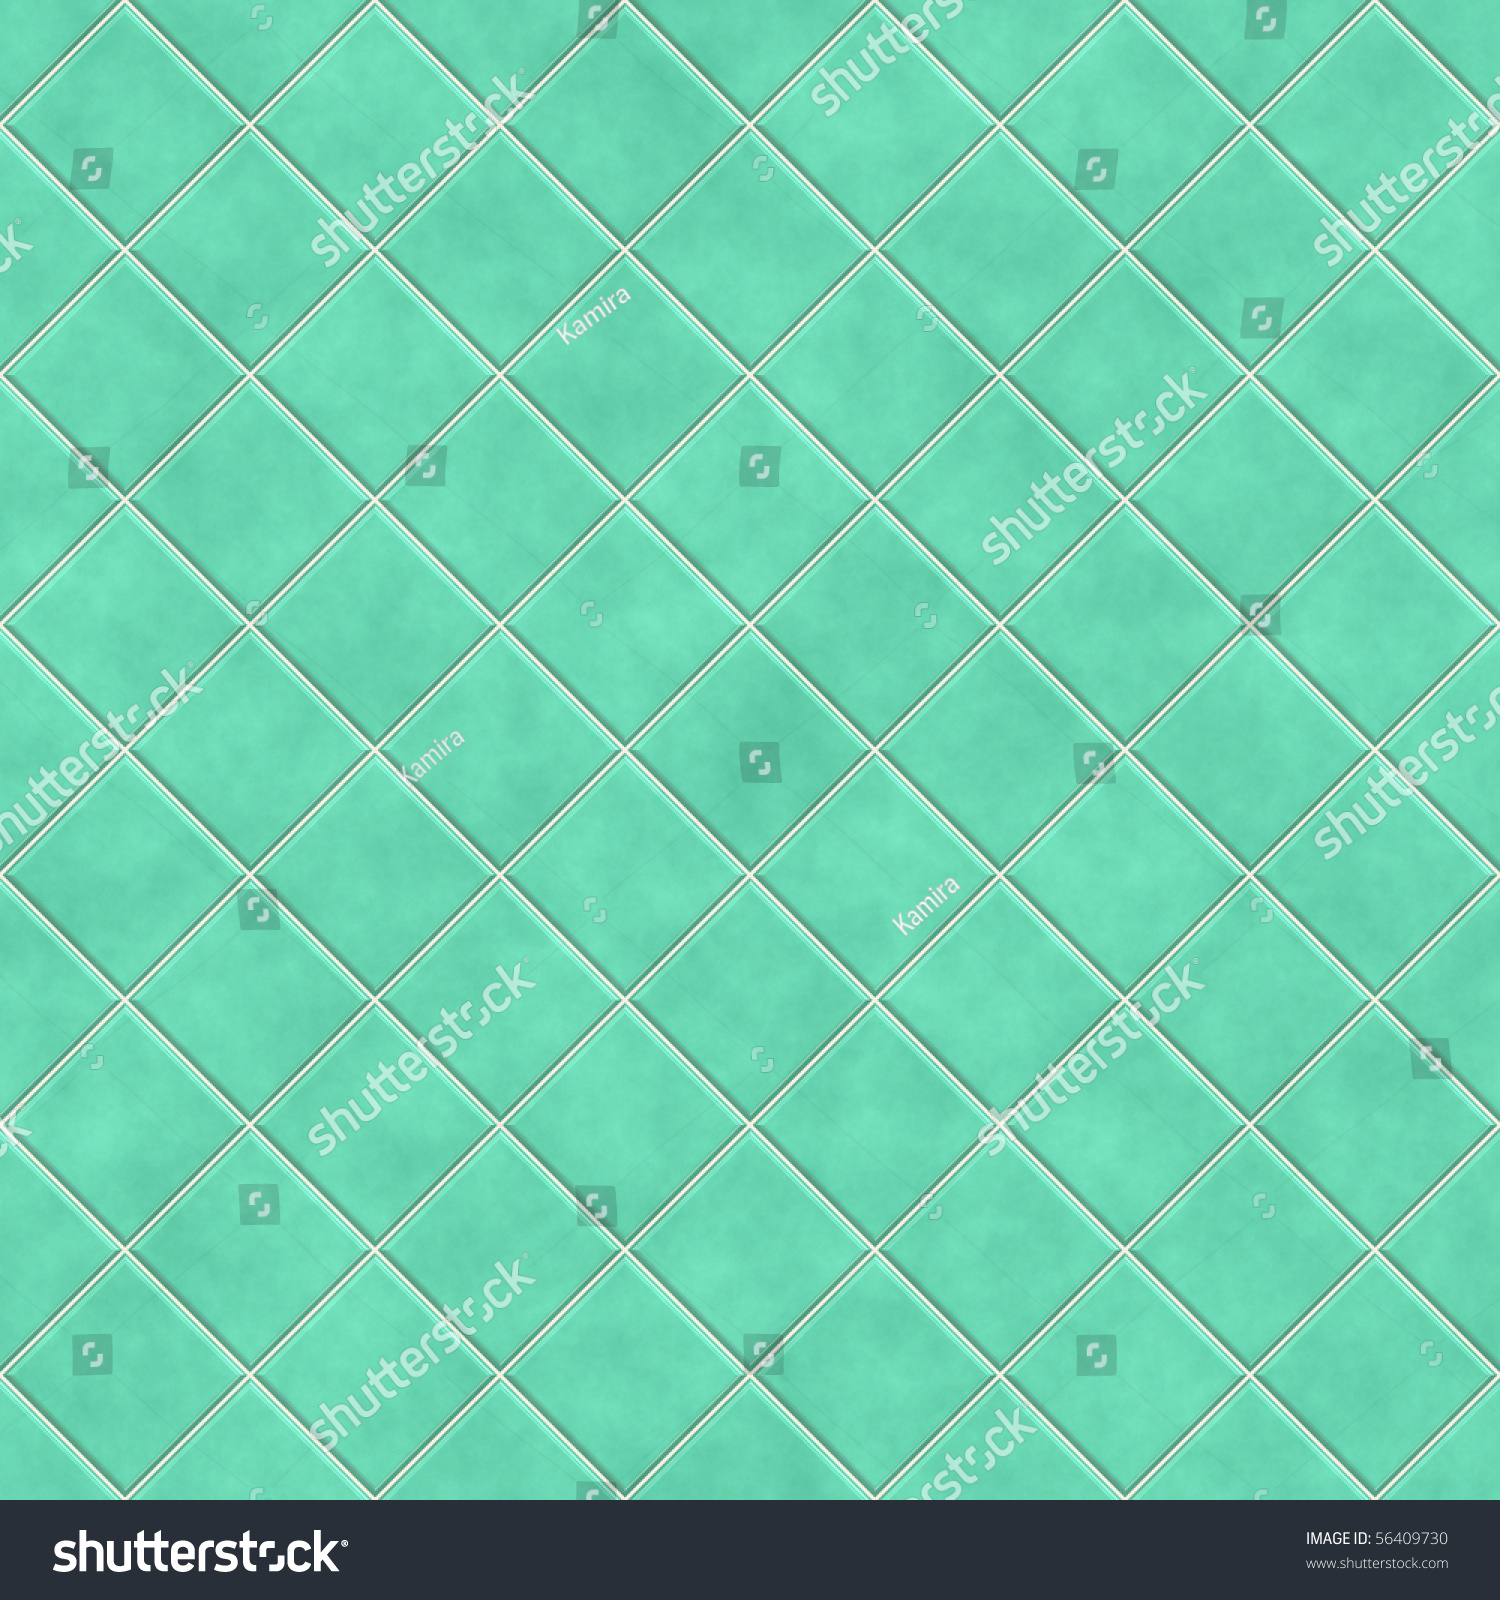 Green tiles kitchen texture - Seamless Green Tiles Texture Background Kitchen Or Bathroom Concept Preview Save To A Lightbox